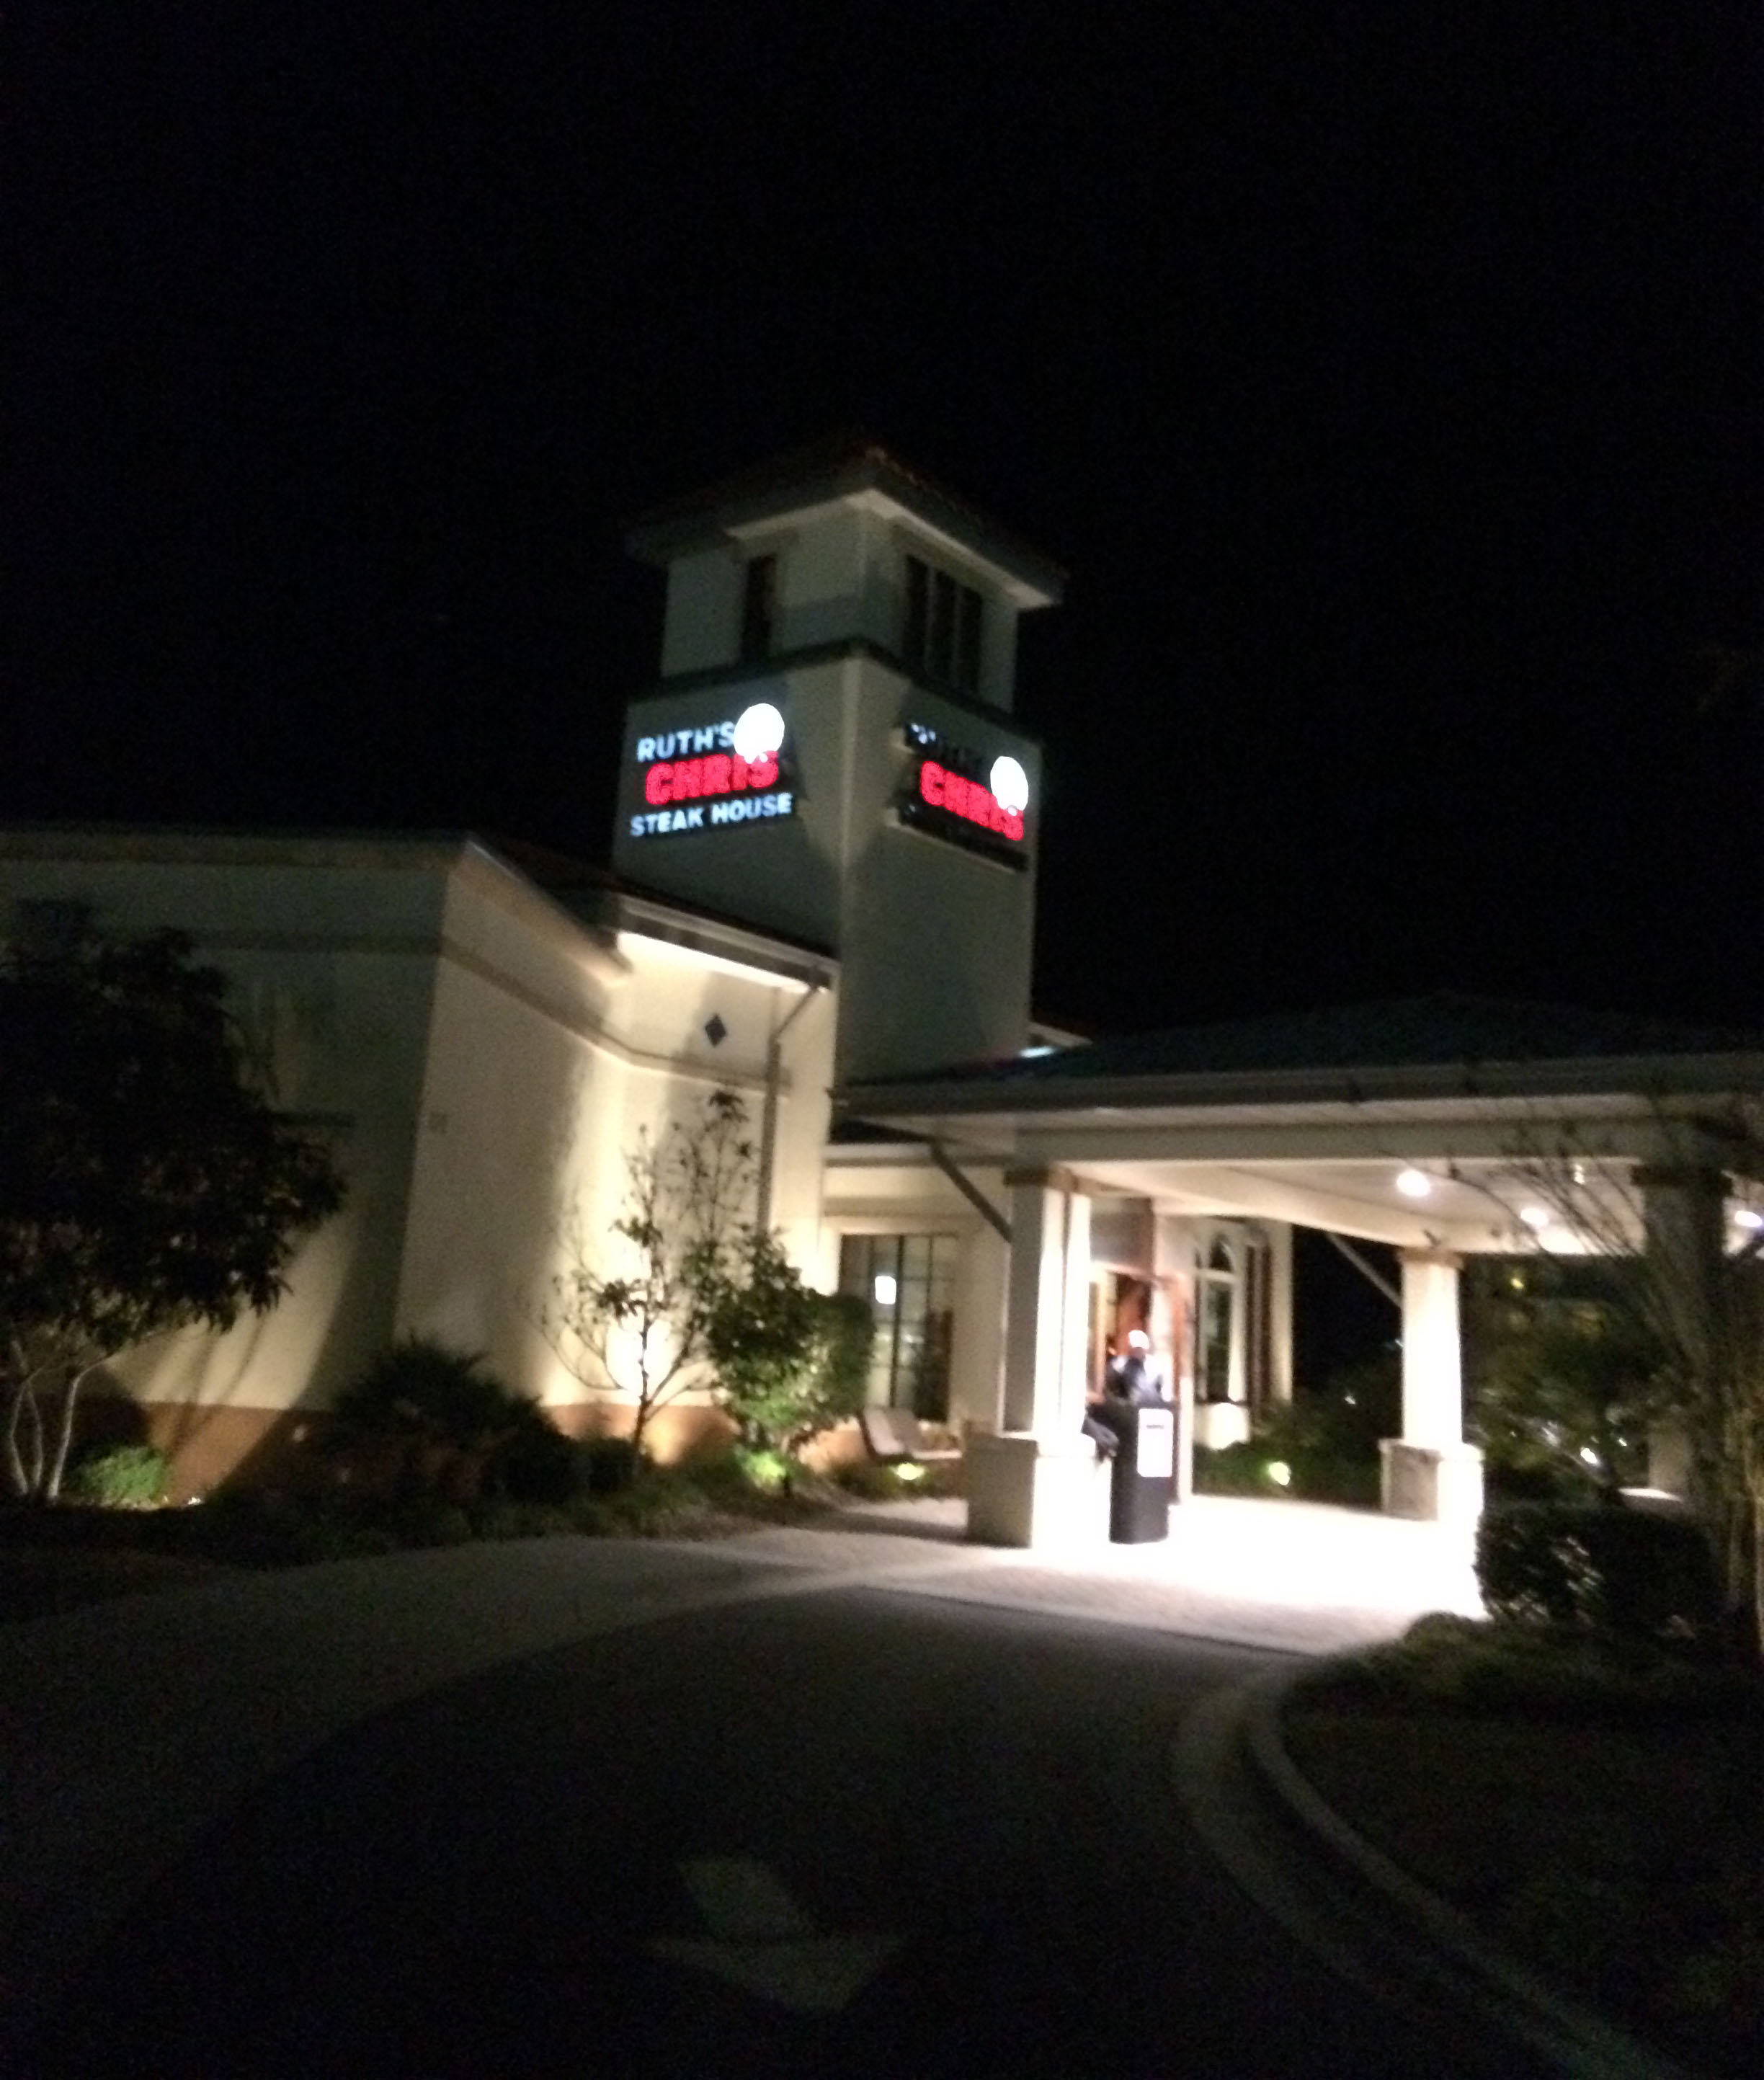 My blurry photo of the Myrtle Beach Ruth's Chris from the outside.